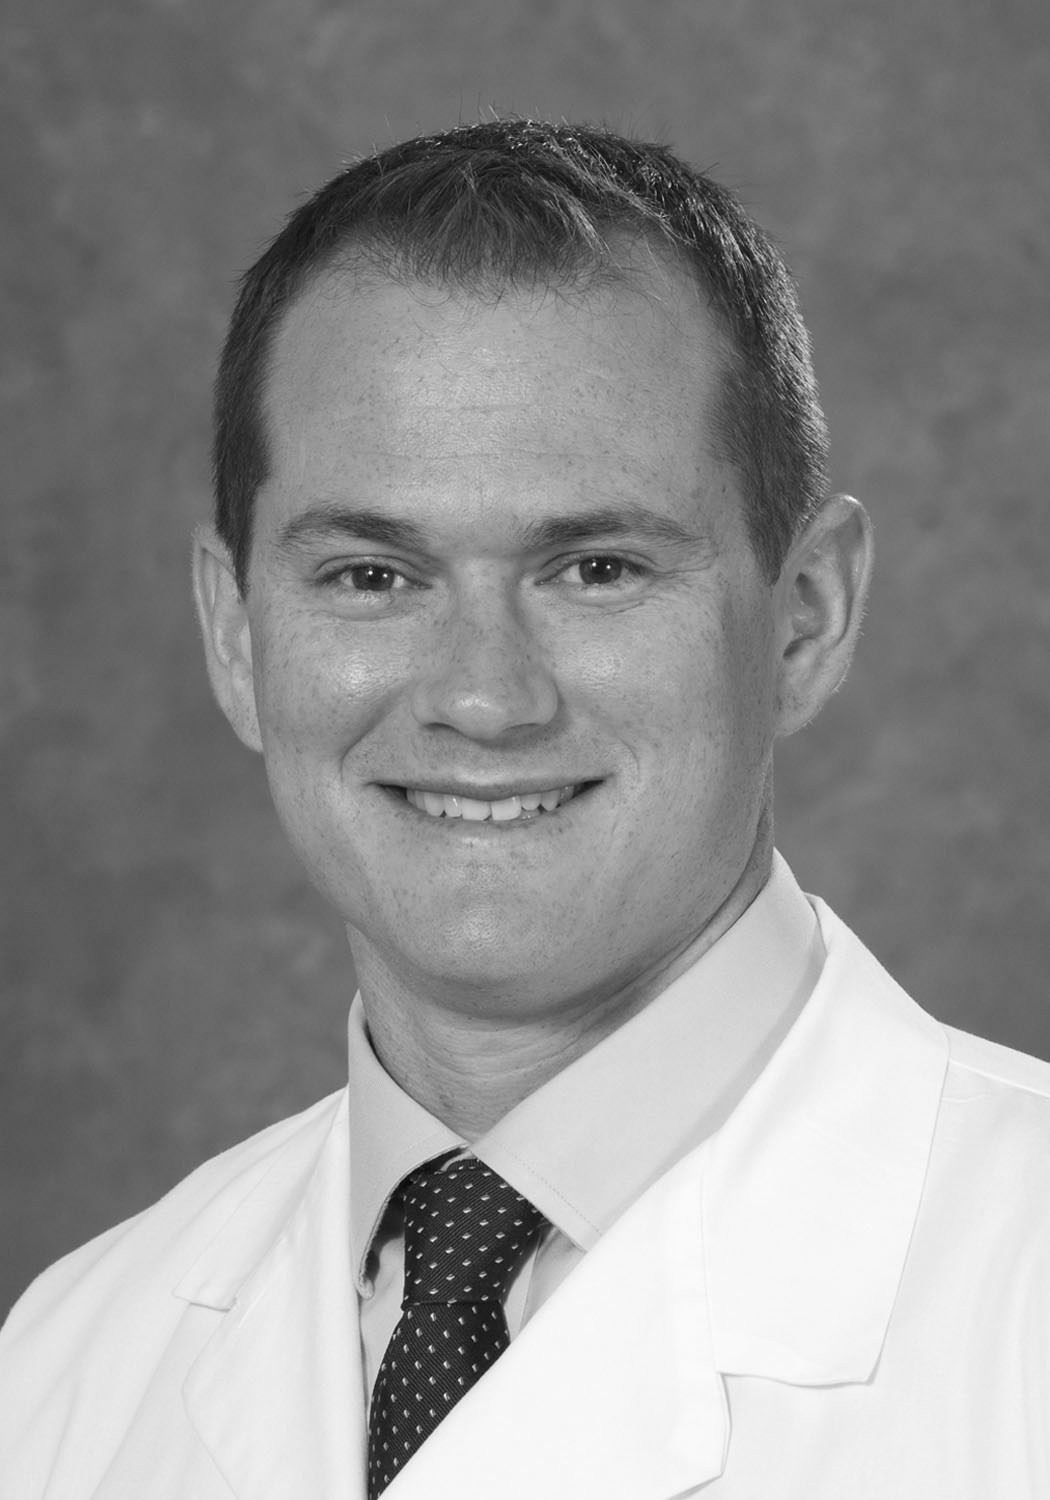 Katren Tyler, M.D. Associate Residency Program Director